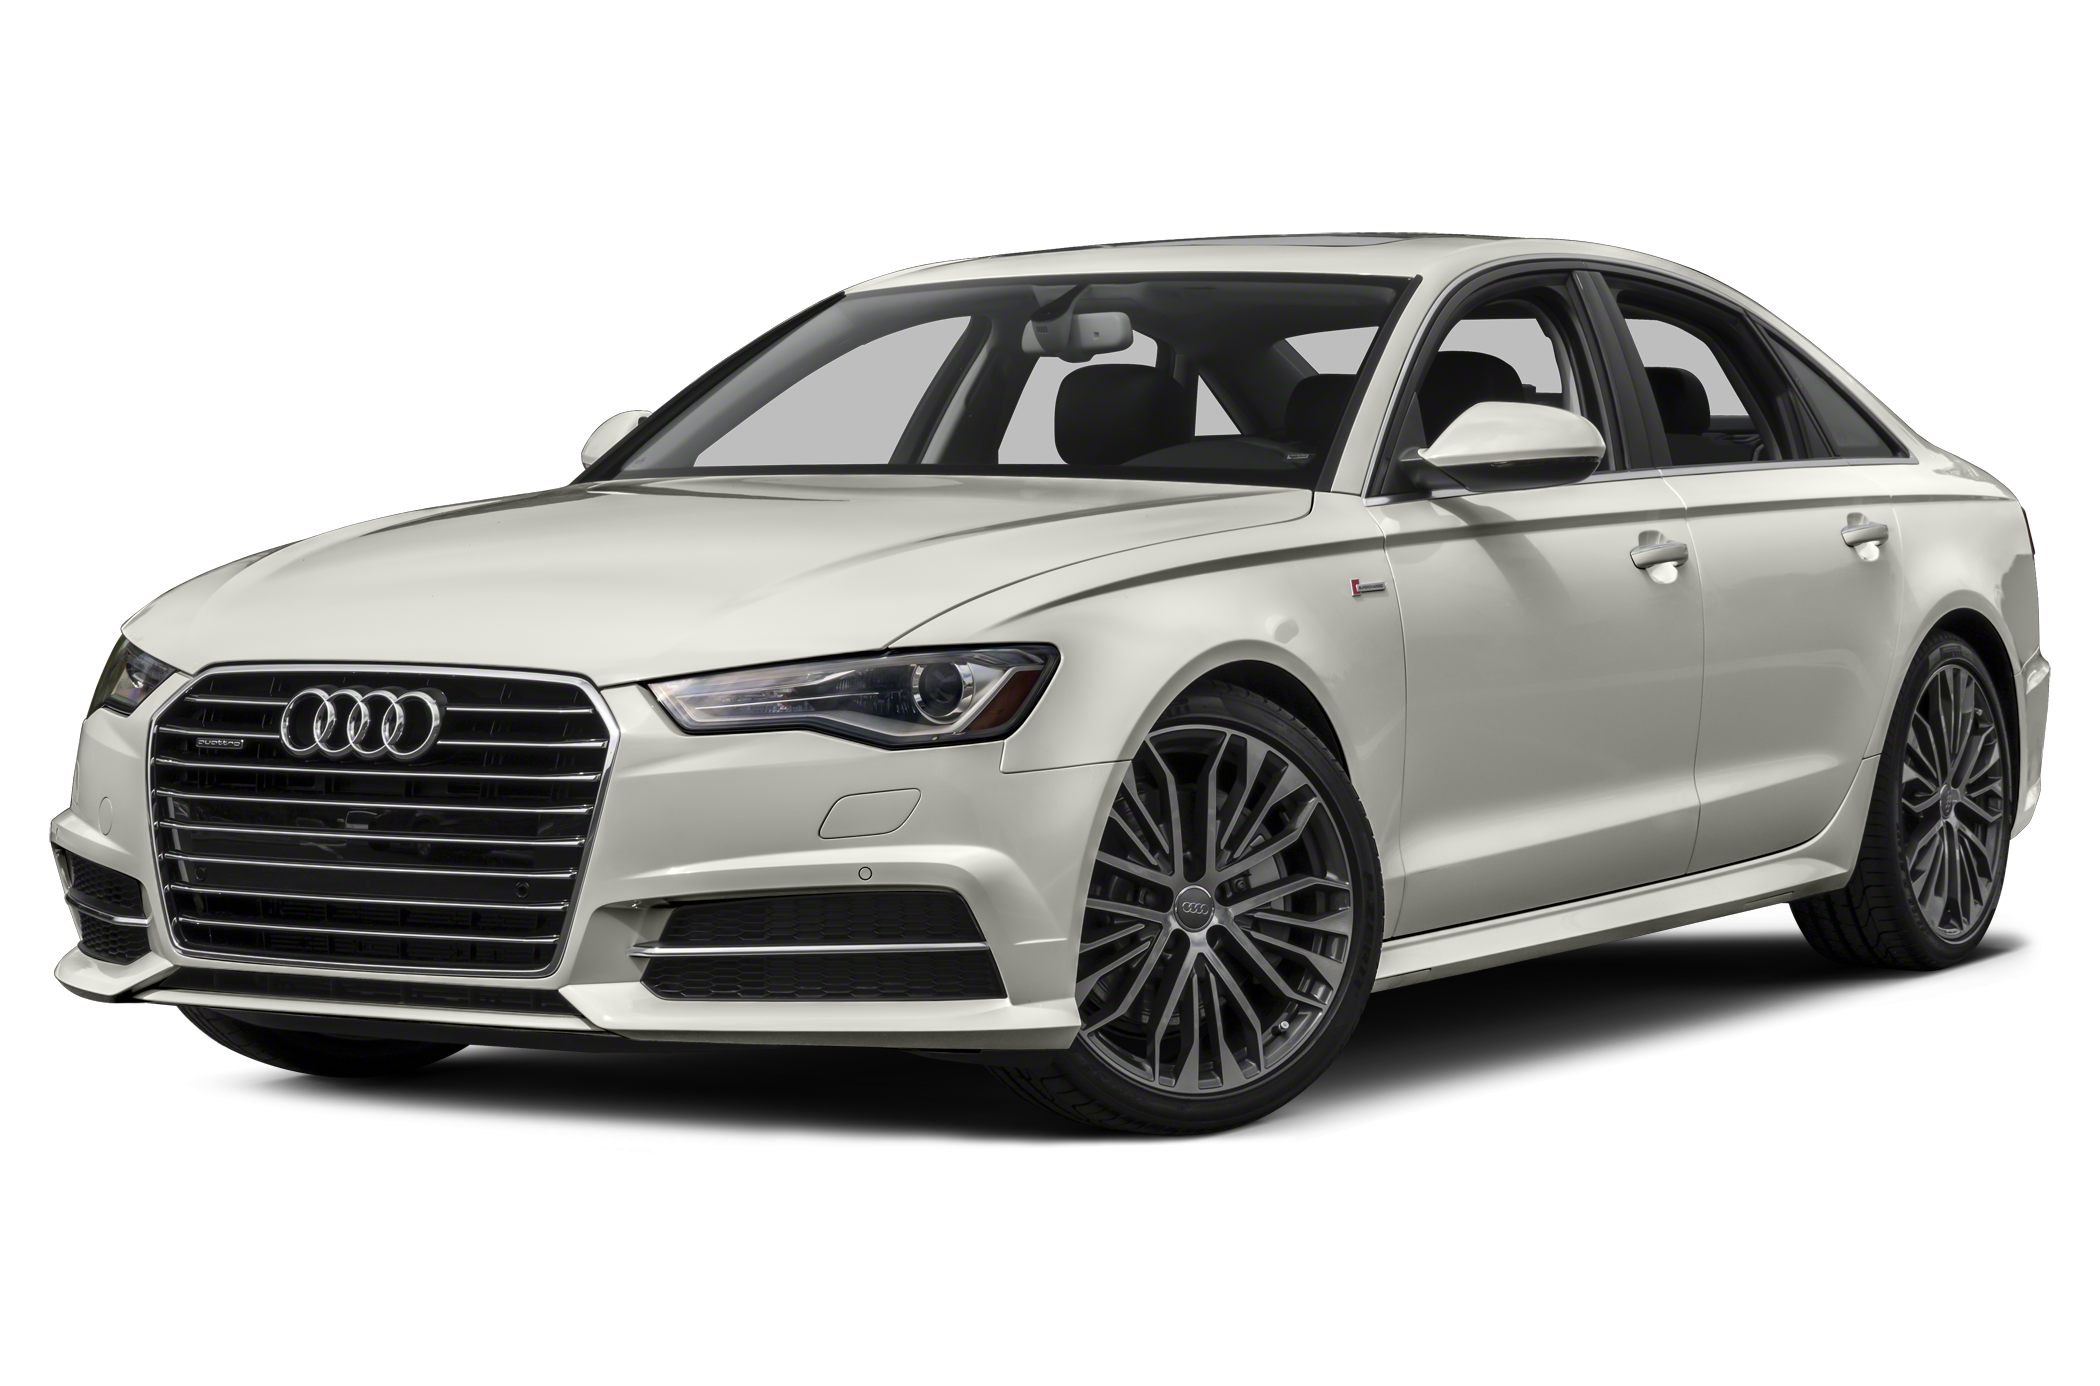 Nice wallpapers Audi A6 2100x1386px